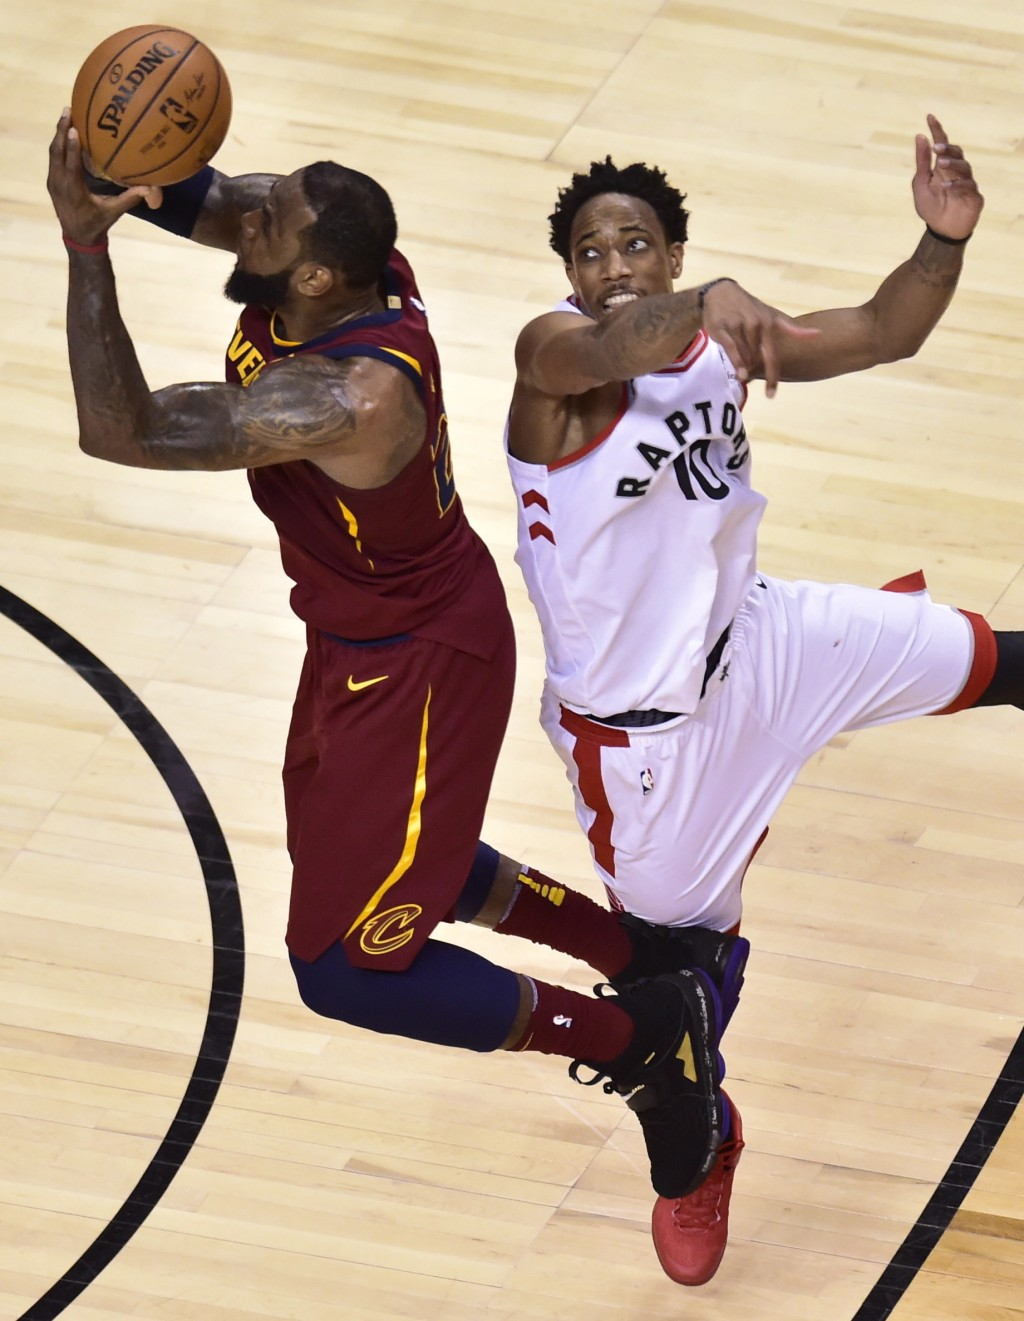 Cleveland Cavaliers forward LeBron James (23) shoots after the shot clock had expired, as Toronto Raptors guard DeMar DeRozan (10) defends during over...